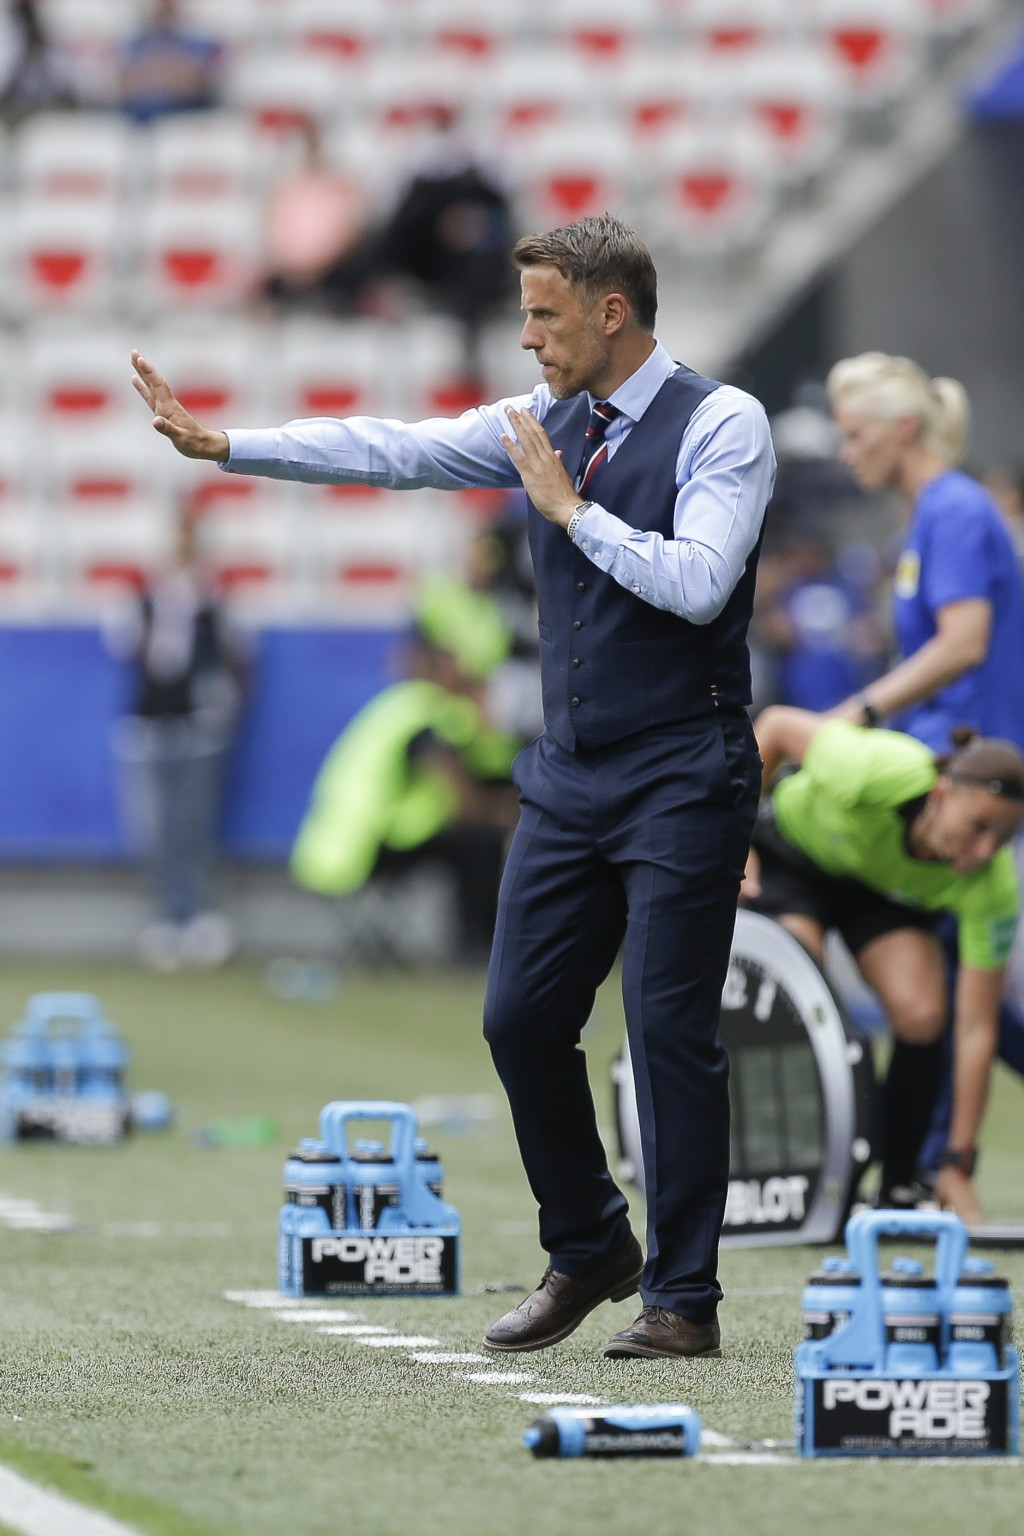 England head coach Philip Neville gives direction to the players during the Women's World Cup Group D soccer match between England and Scotland in Nic